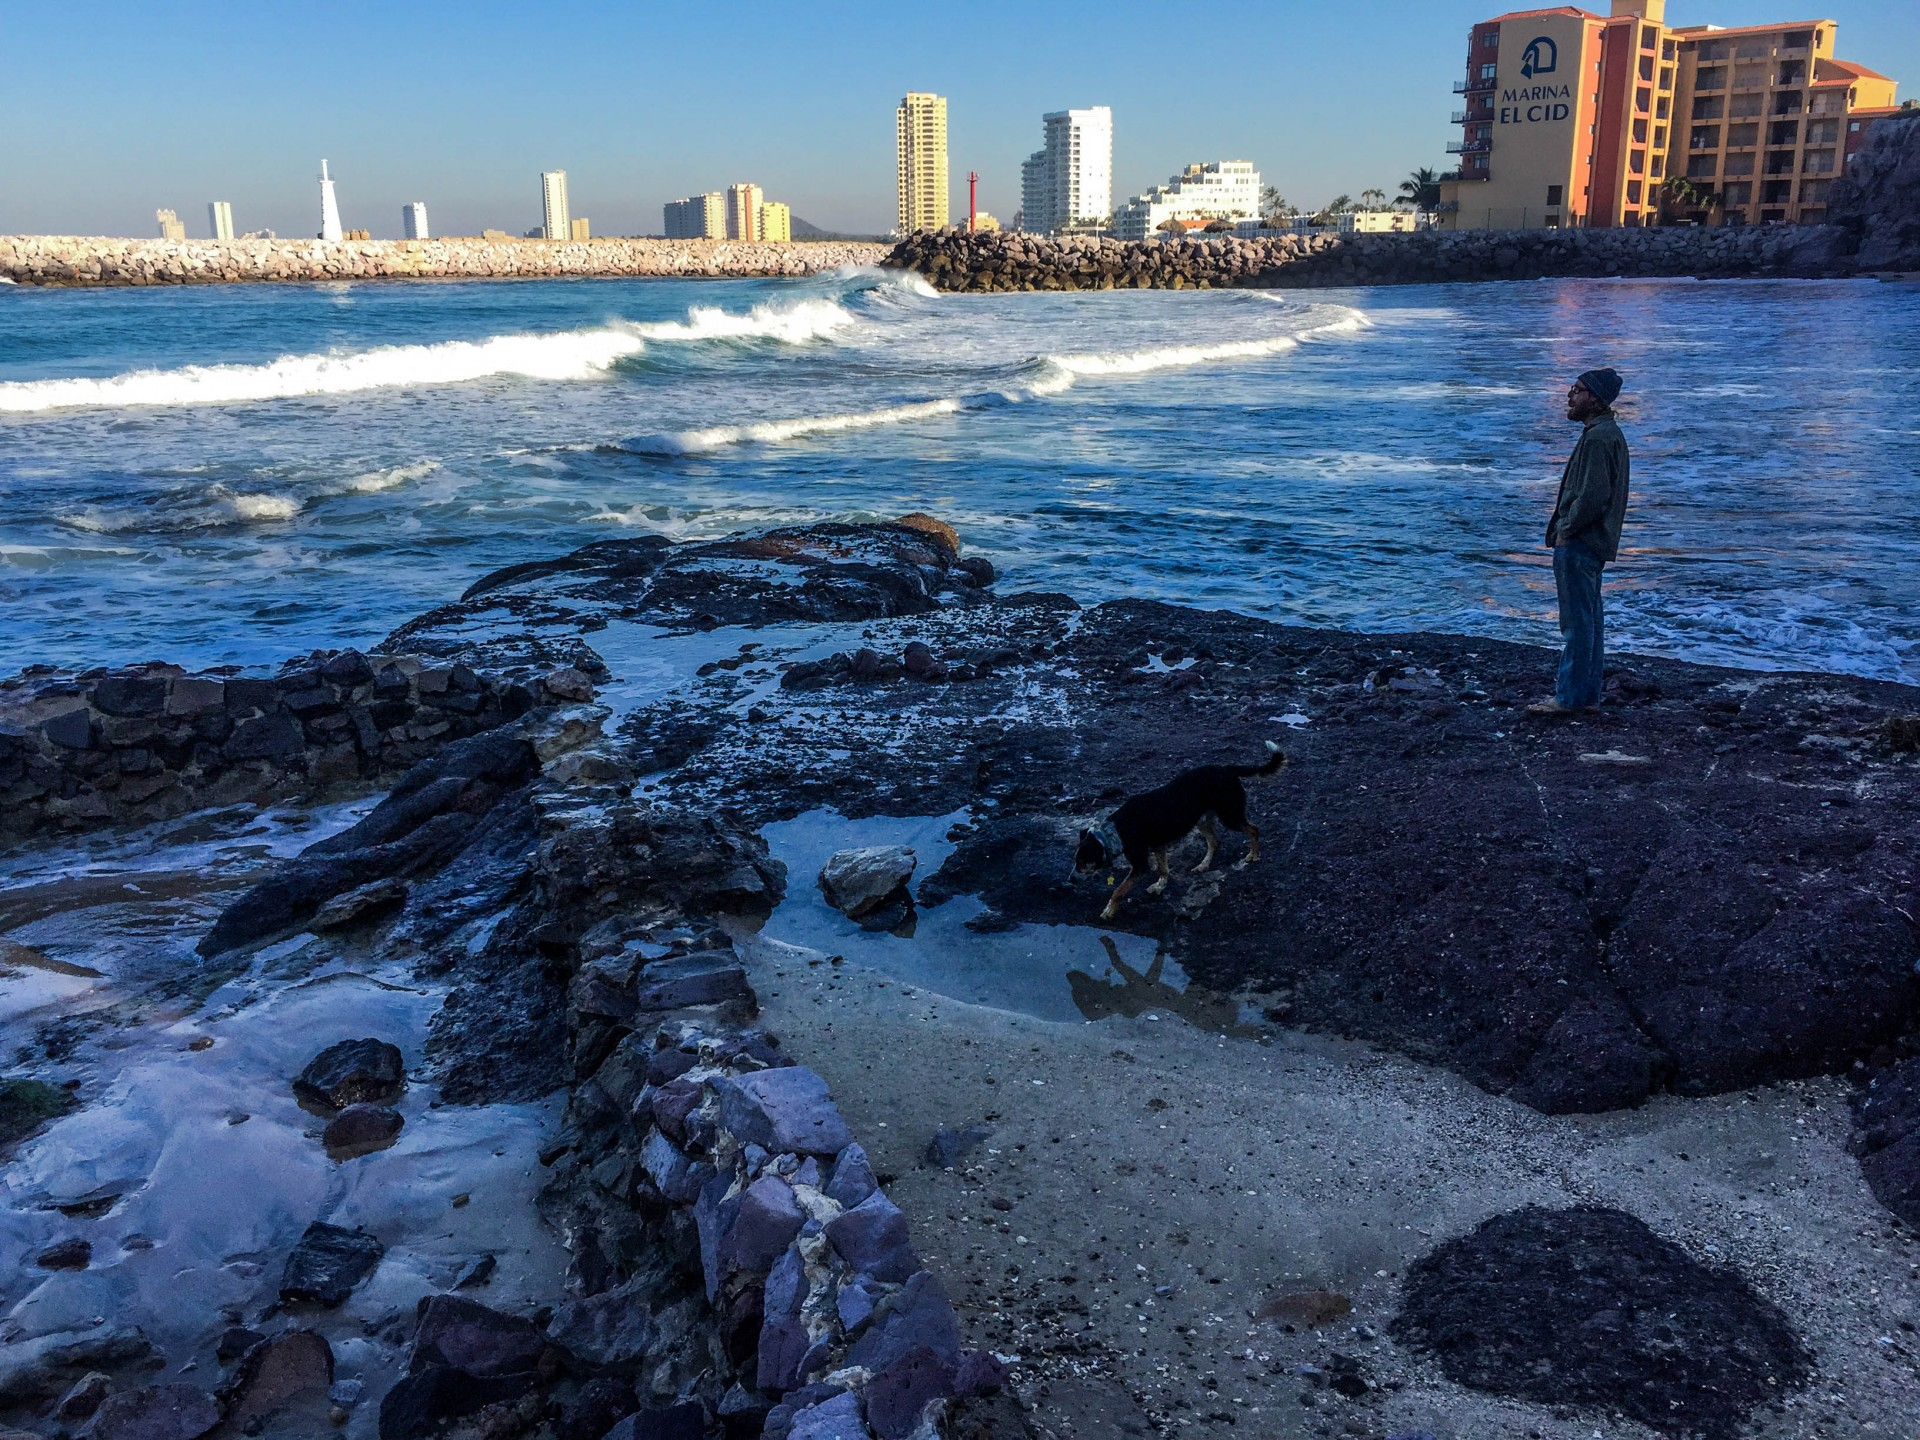 Mazatlán and the rising tide just outside of the marina. The breakwater becomes impassable with bigger swells.